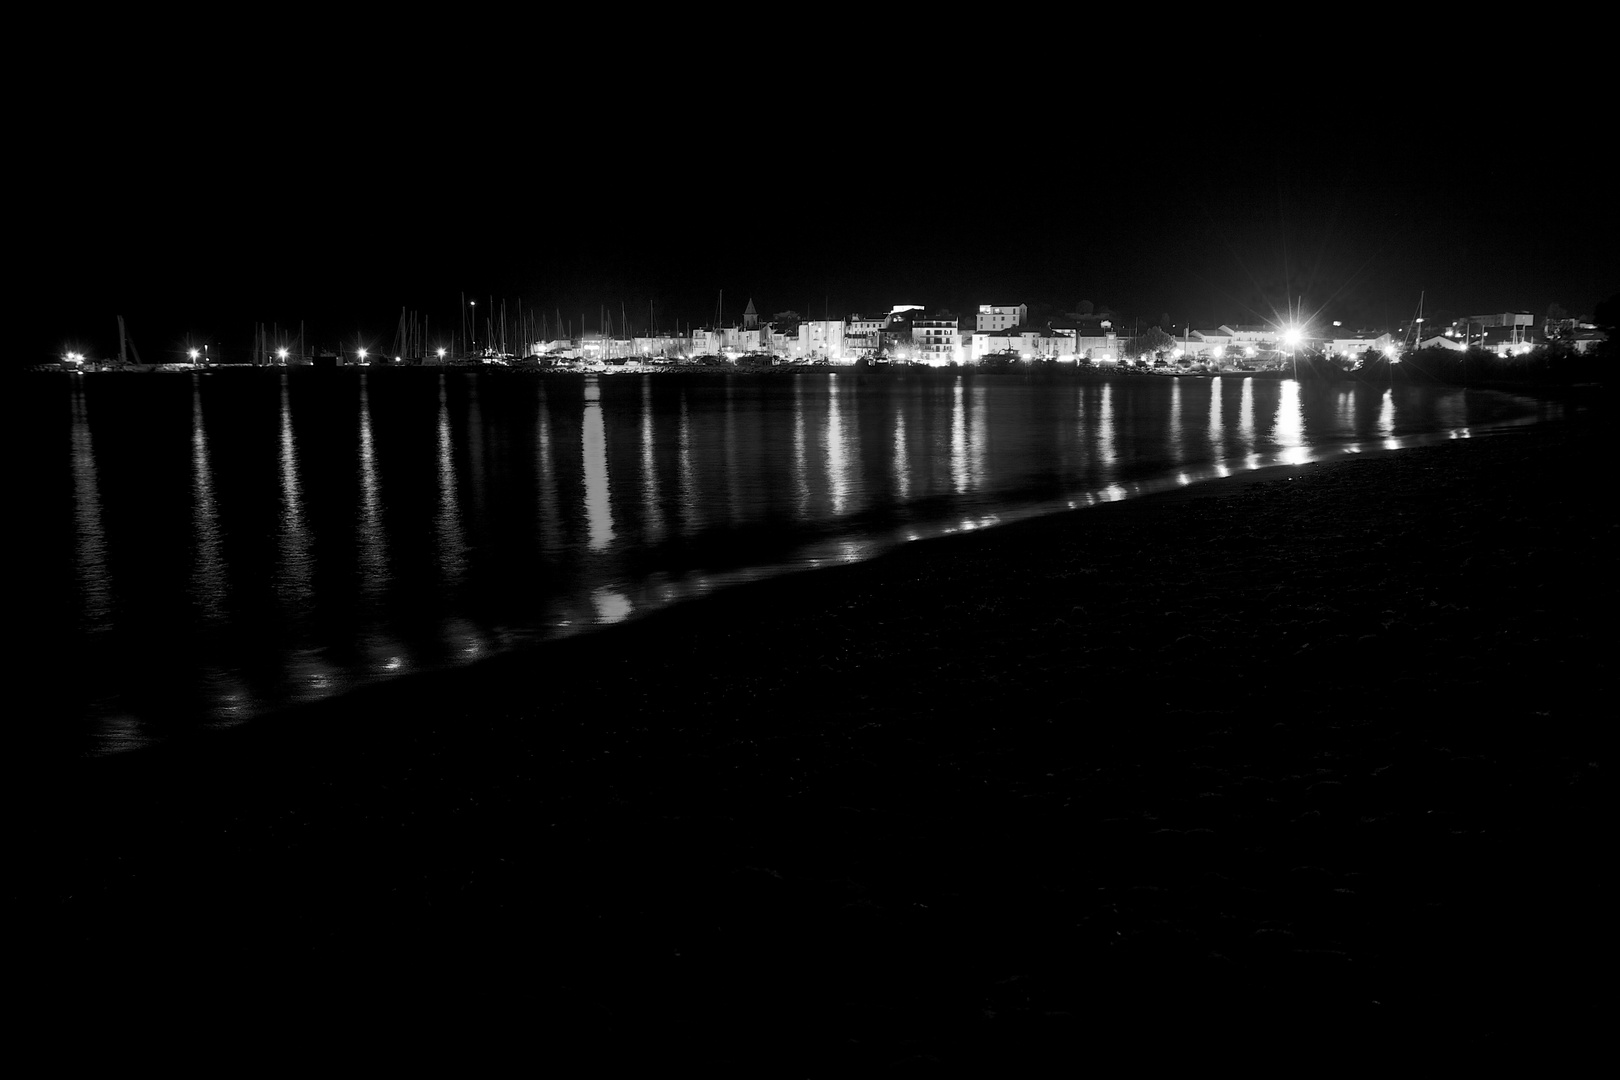 St. Florent by night